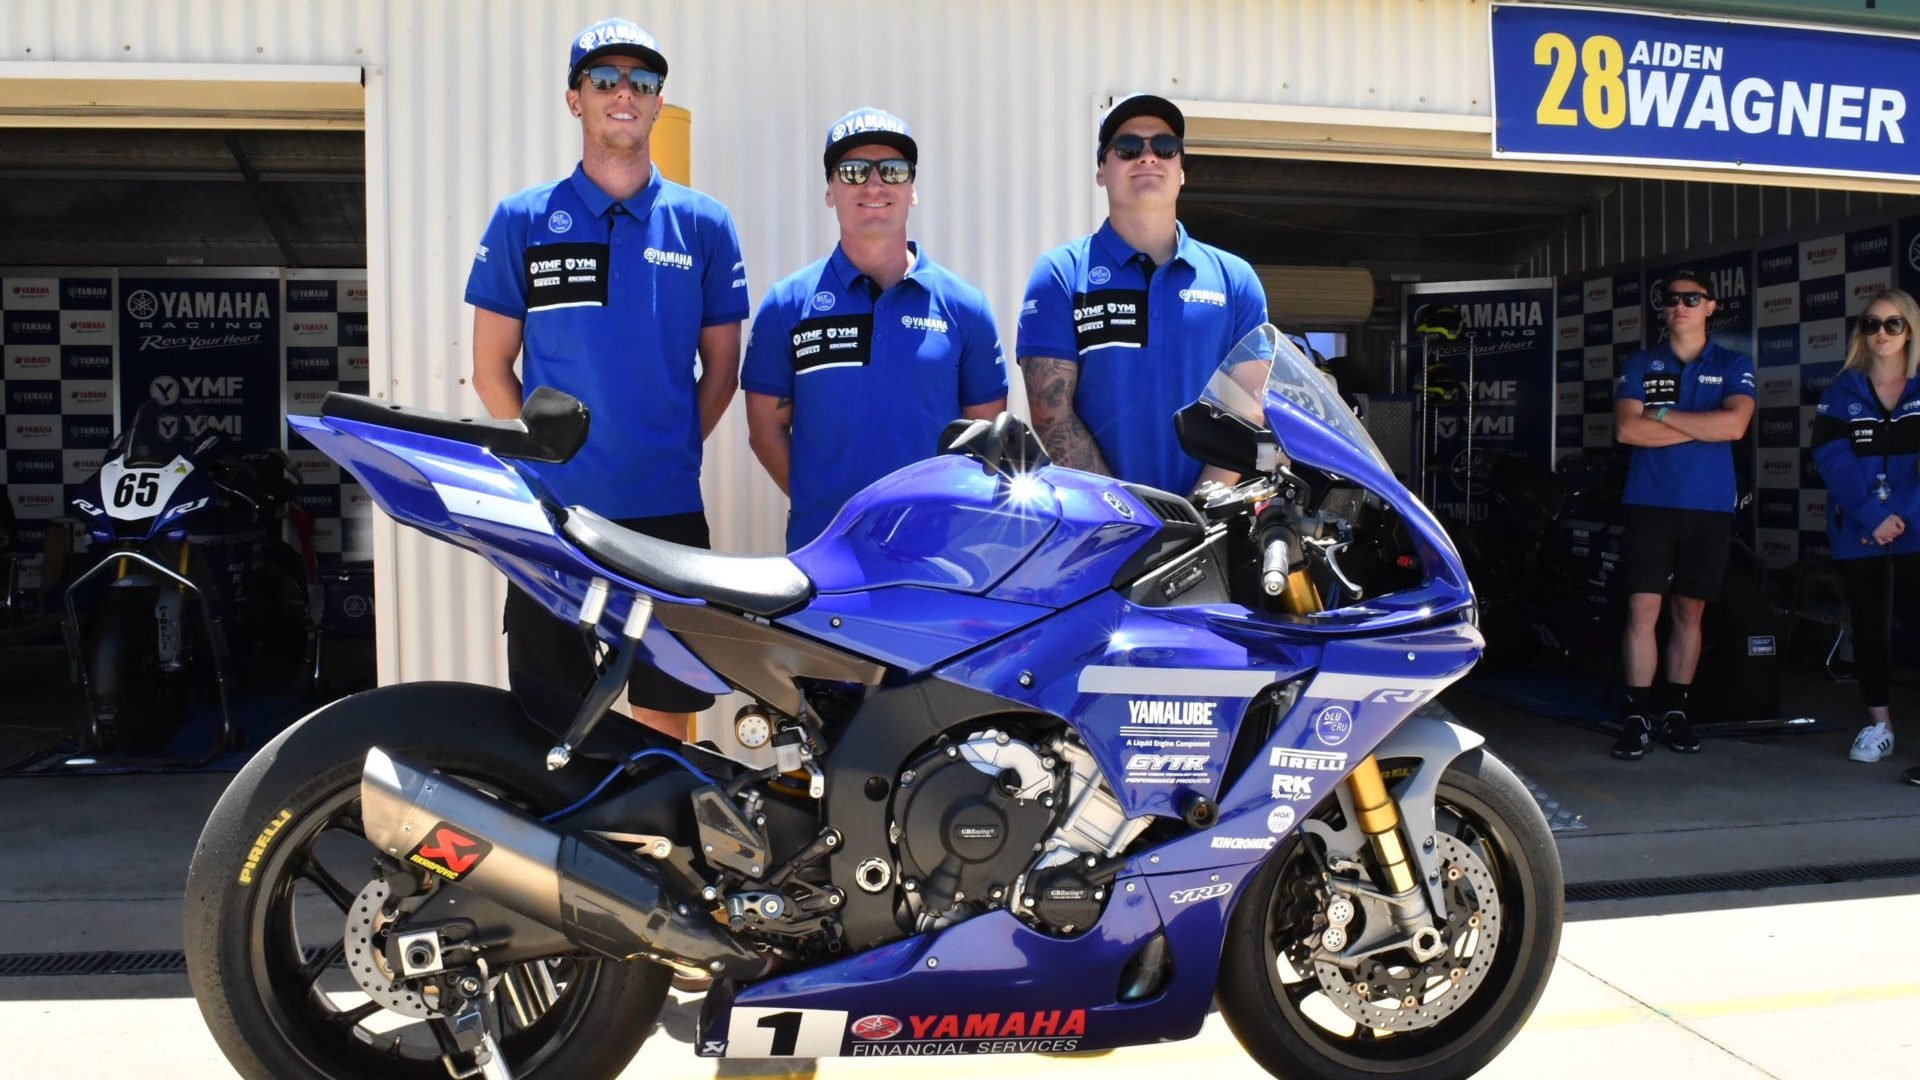 (From left) Cru Halliday, Broc Parkes and Aiden Wagner. Photo courtesy ASBK.